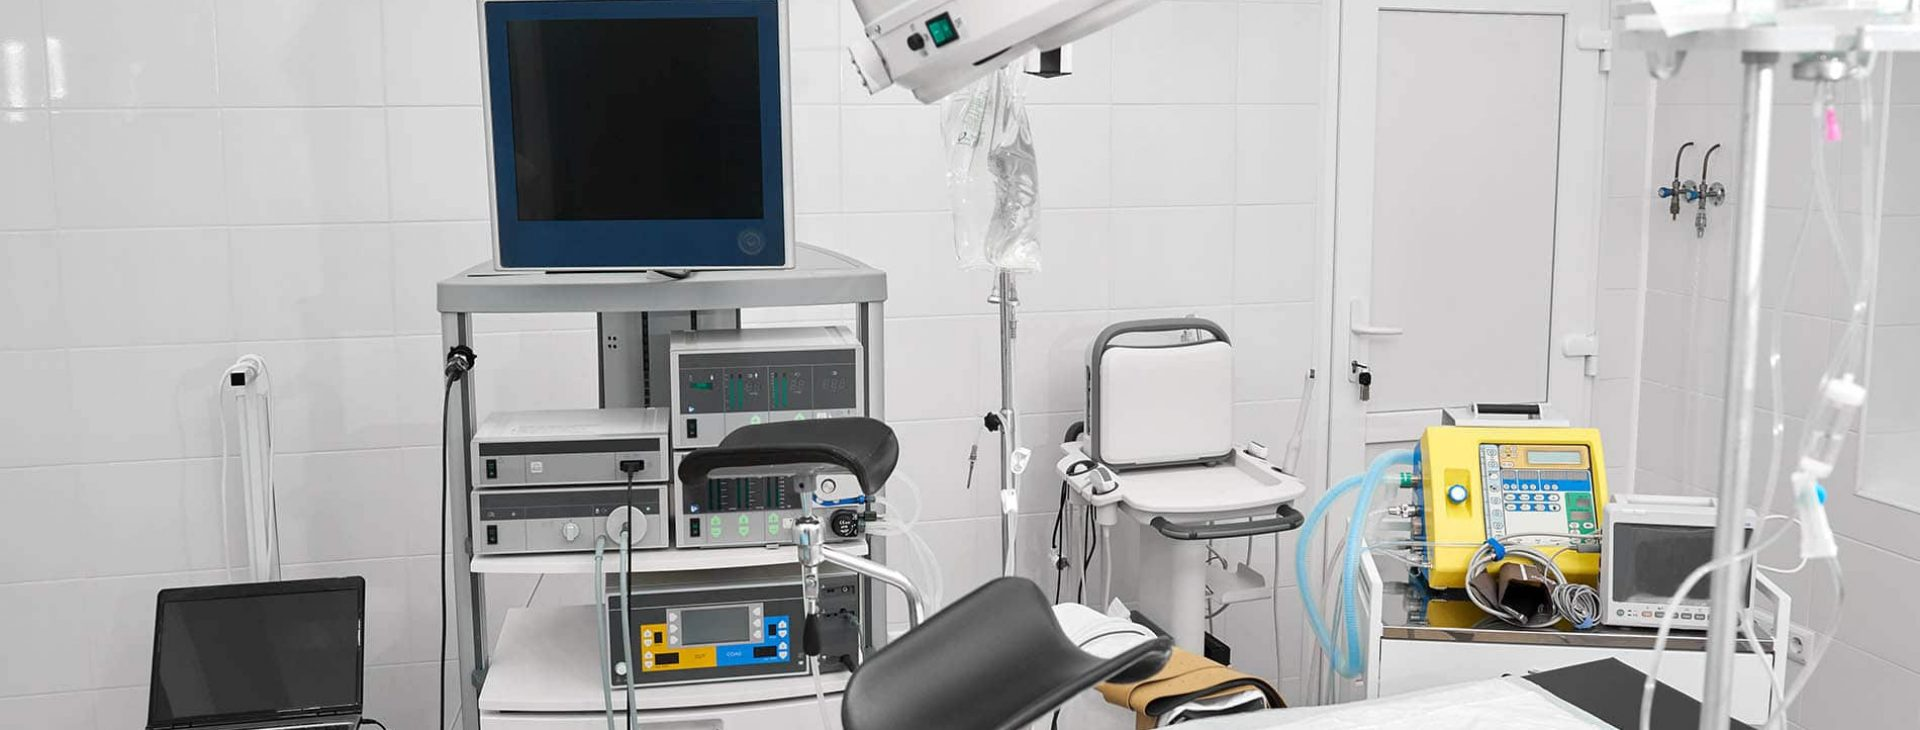 Why 66% of Medical Equipment Arrived Damaged? $1,000,000 Loss!